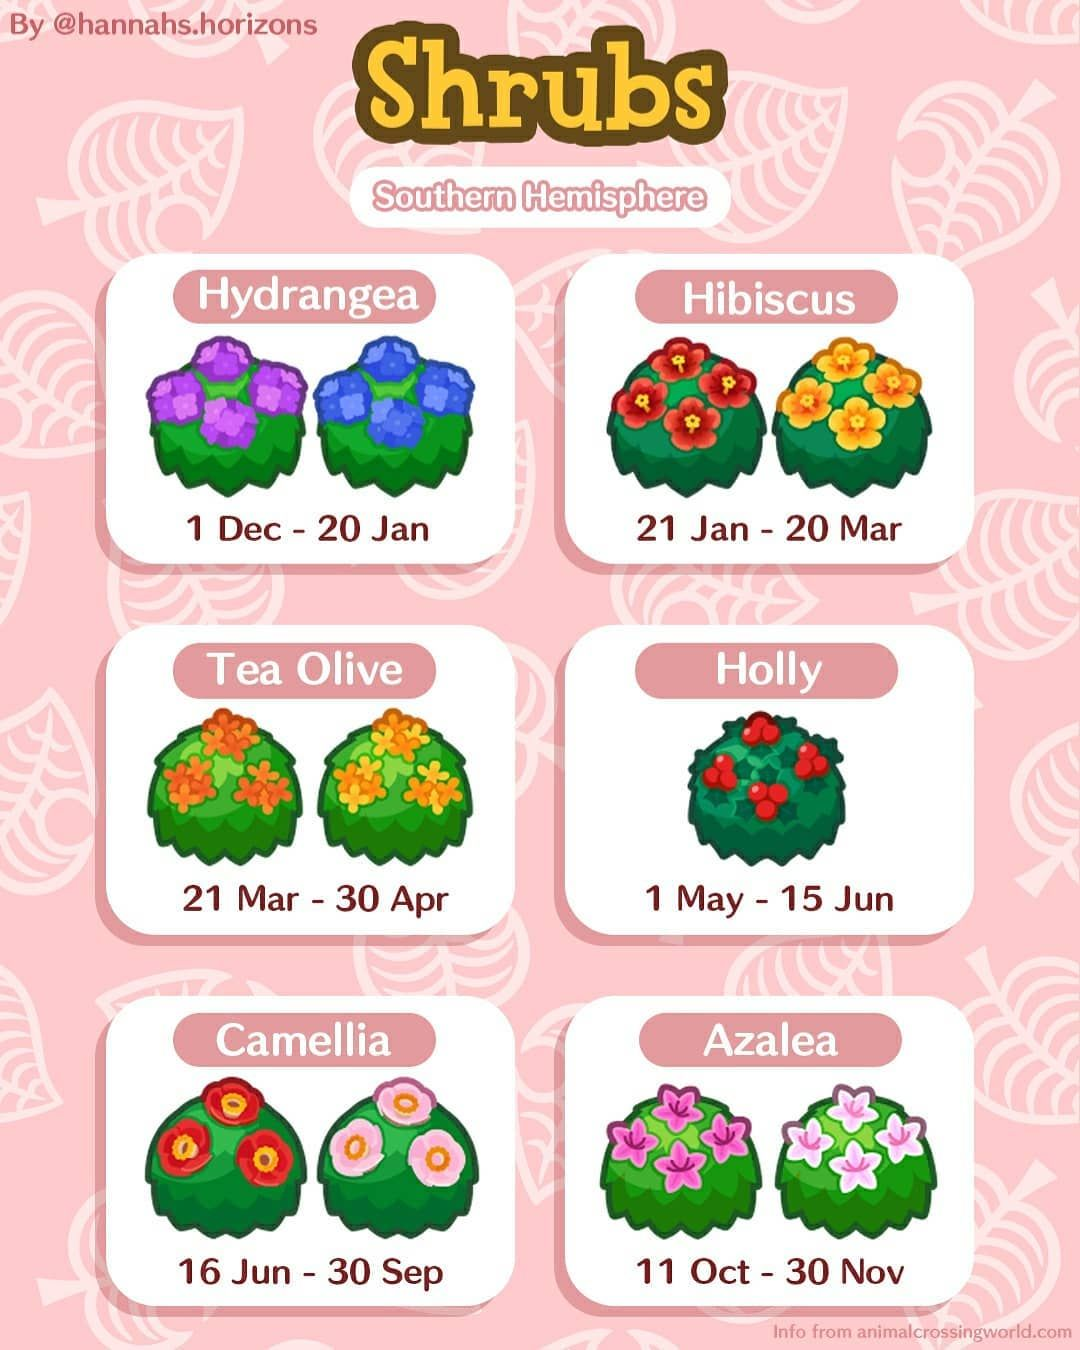 7 058 Likes 56 Comments Hana Hannahs Horizons On Instagram Shrubs Blooming Guide Sout New Animal Crossing Animal Crossing Game Animal Crossing Qr